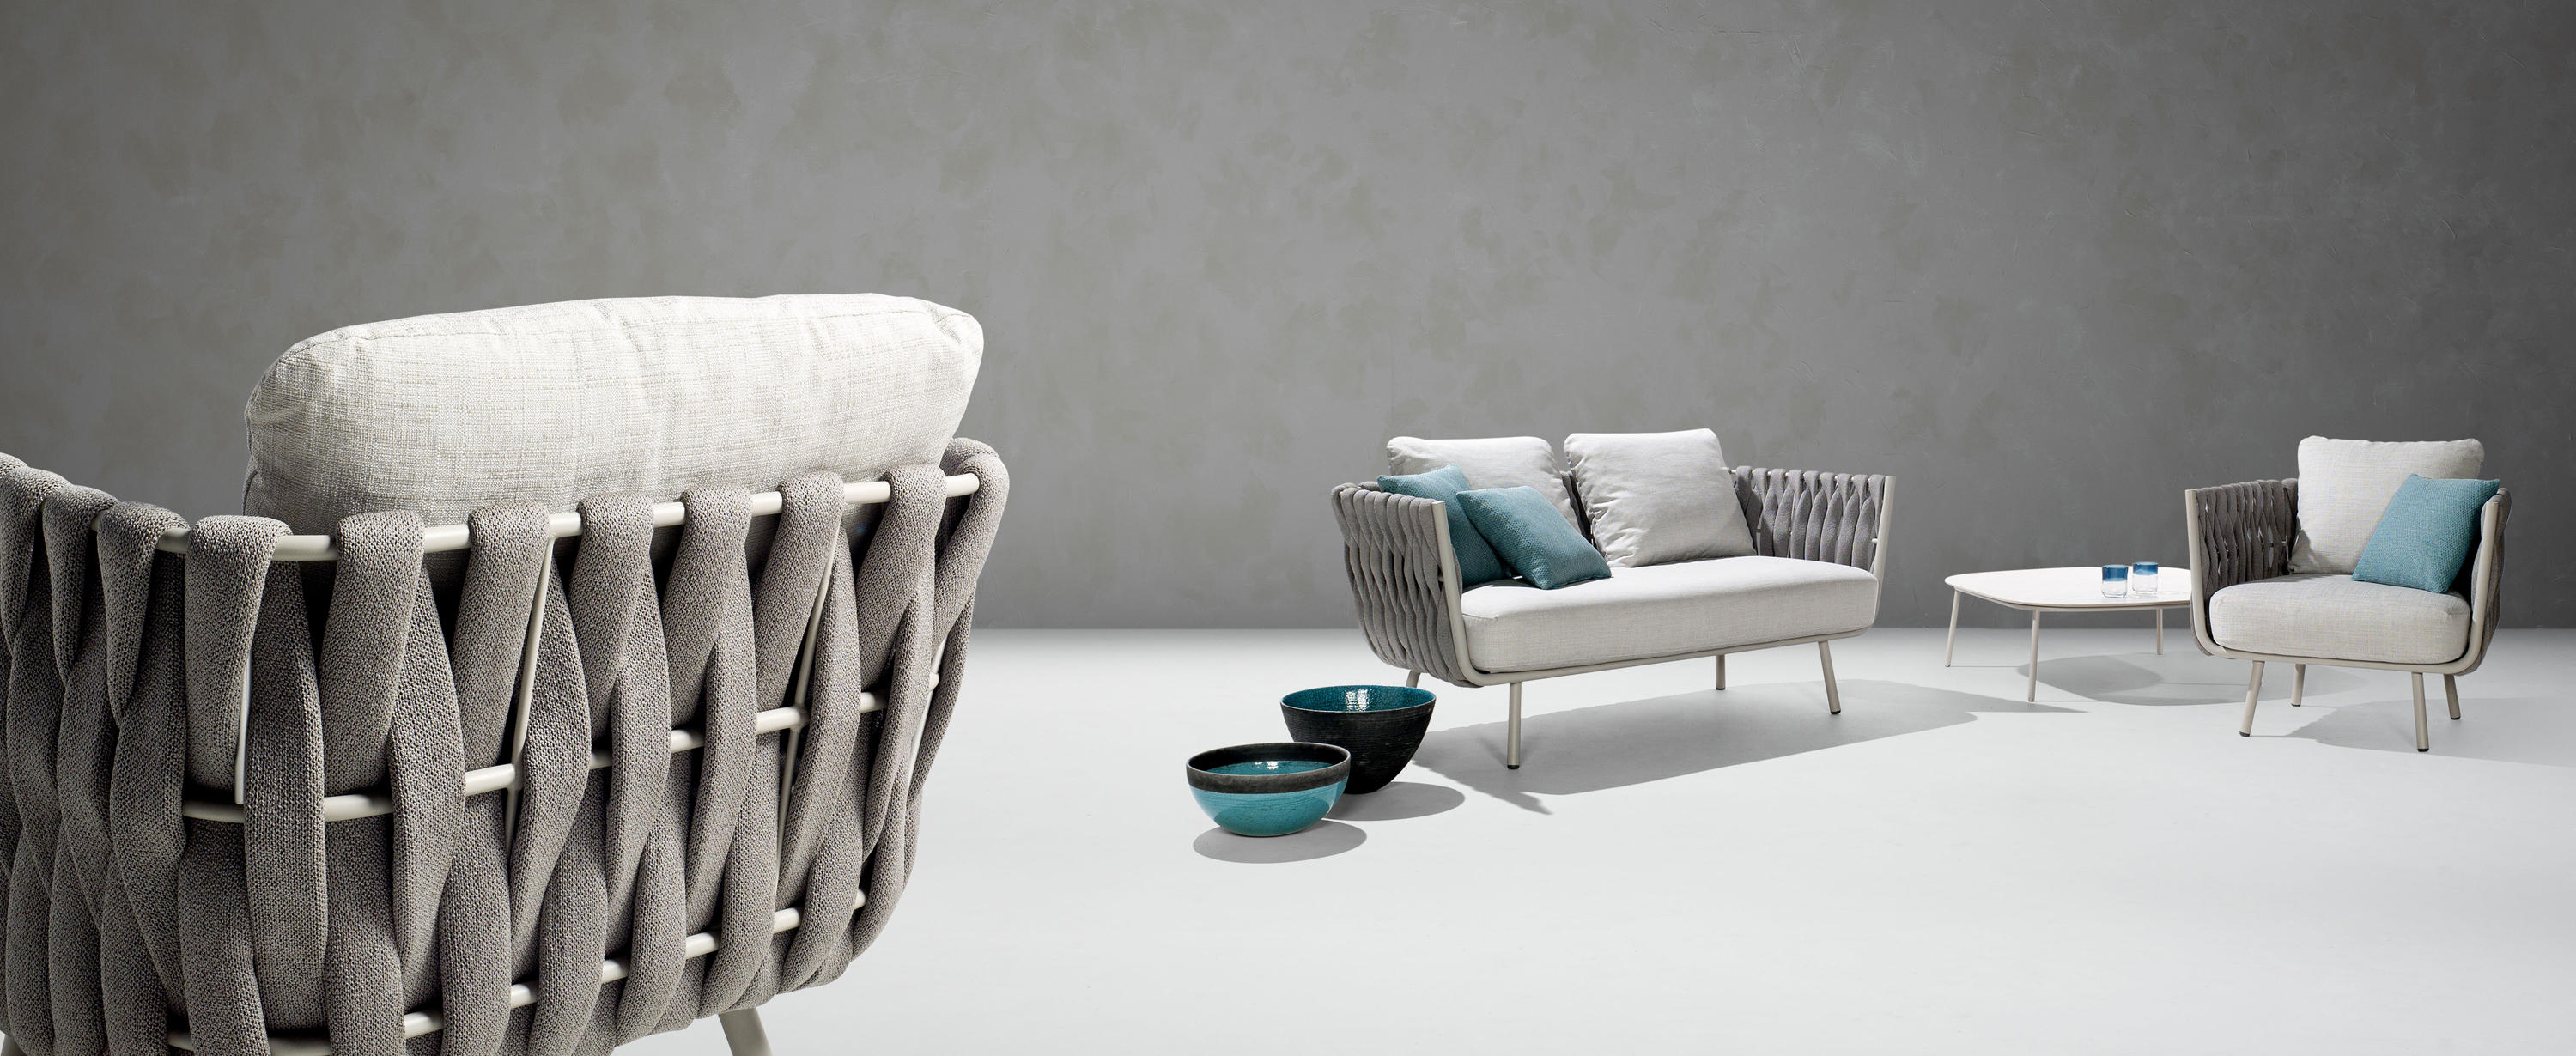 Tosca Armchair Chairs From Trib 249 Architonic